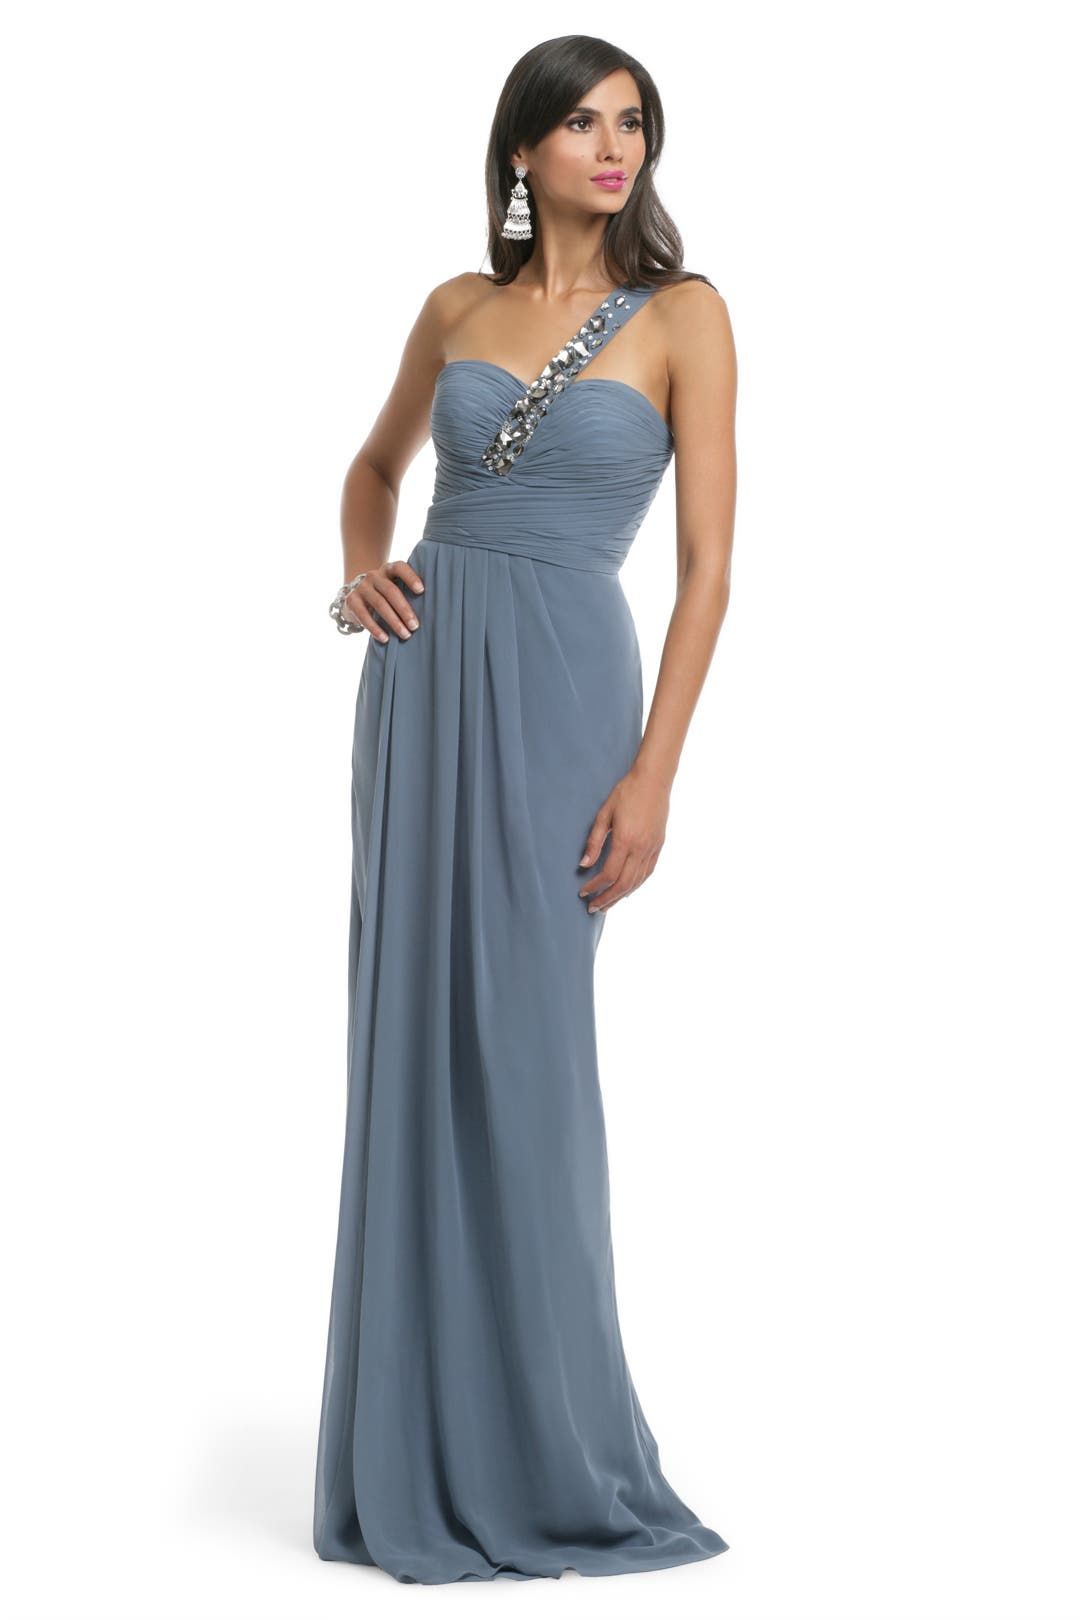 Avio Blue Chiffon Gown by Blugirl